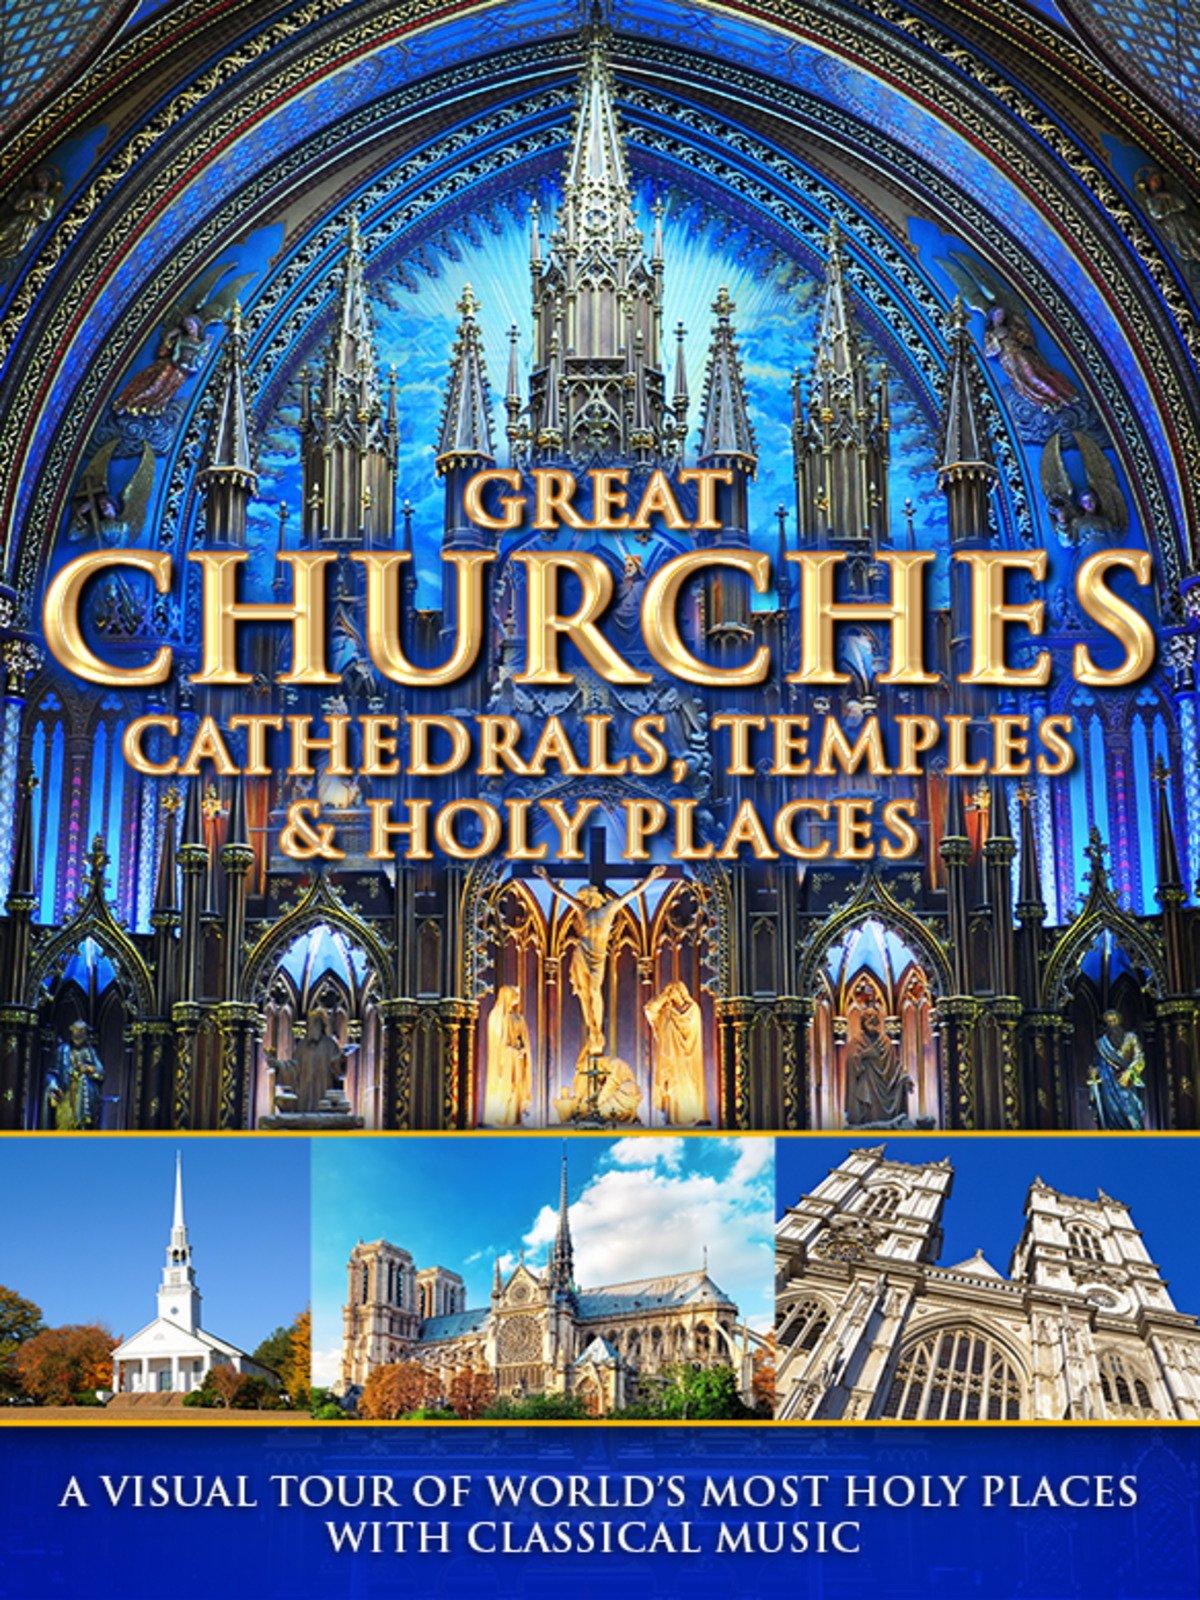 Great Churches, Cathedrals, Temples & Holy Places: A Visual Tour with Classical Music on Amazon Prime Instant Video UK